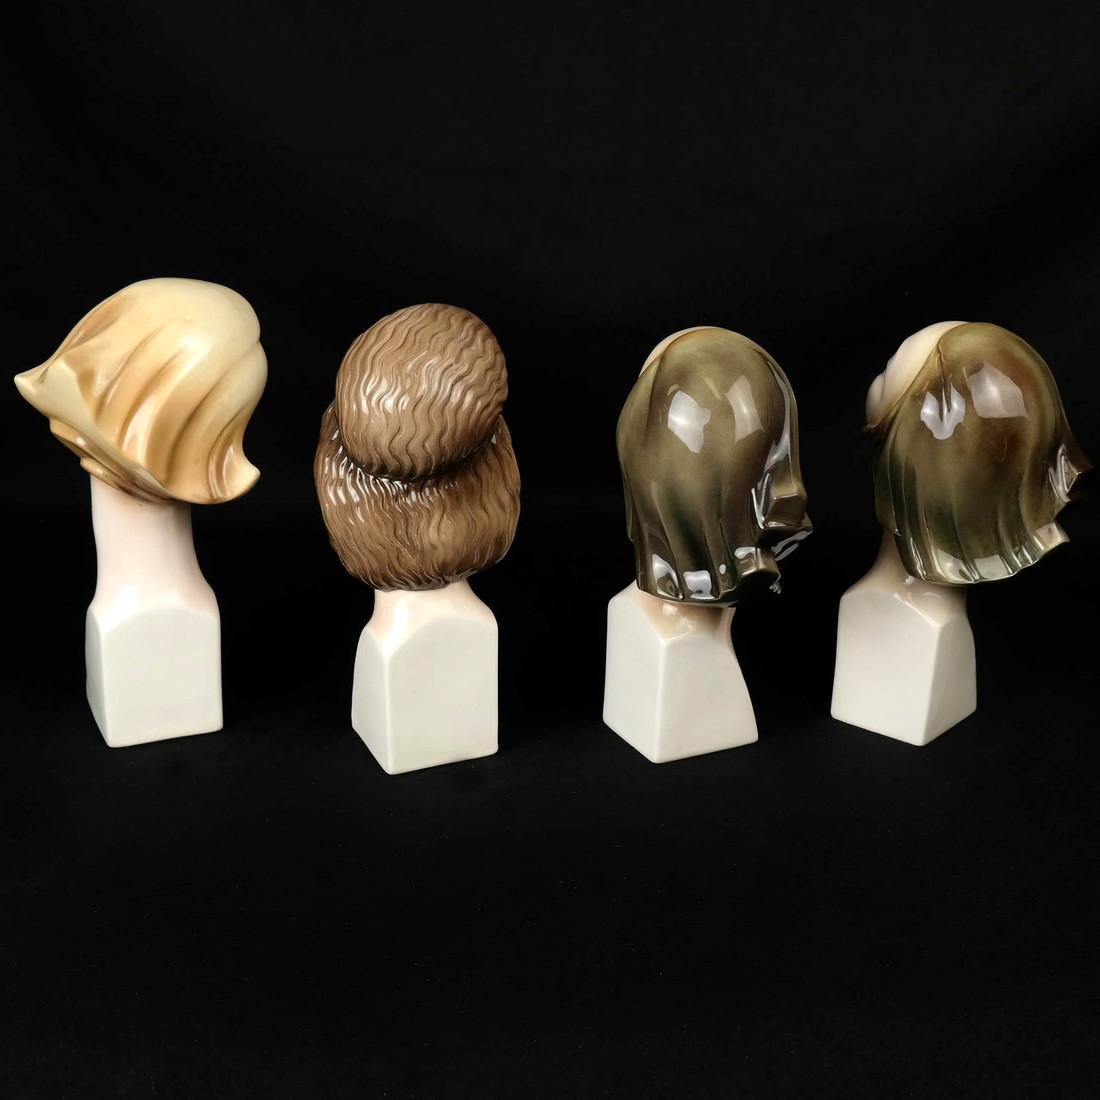 Four Art Deco Style HERTWIG German Female Busts - 3